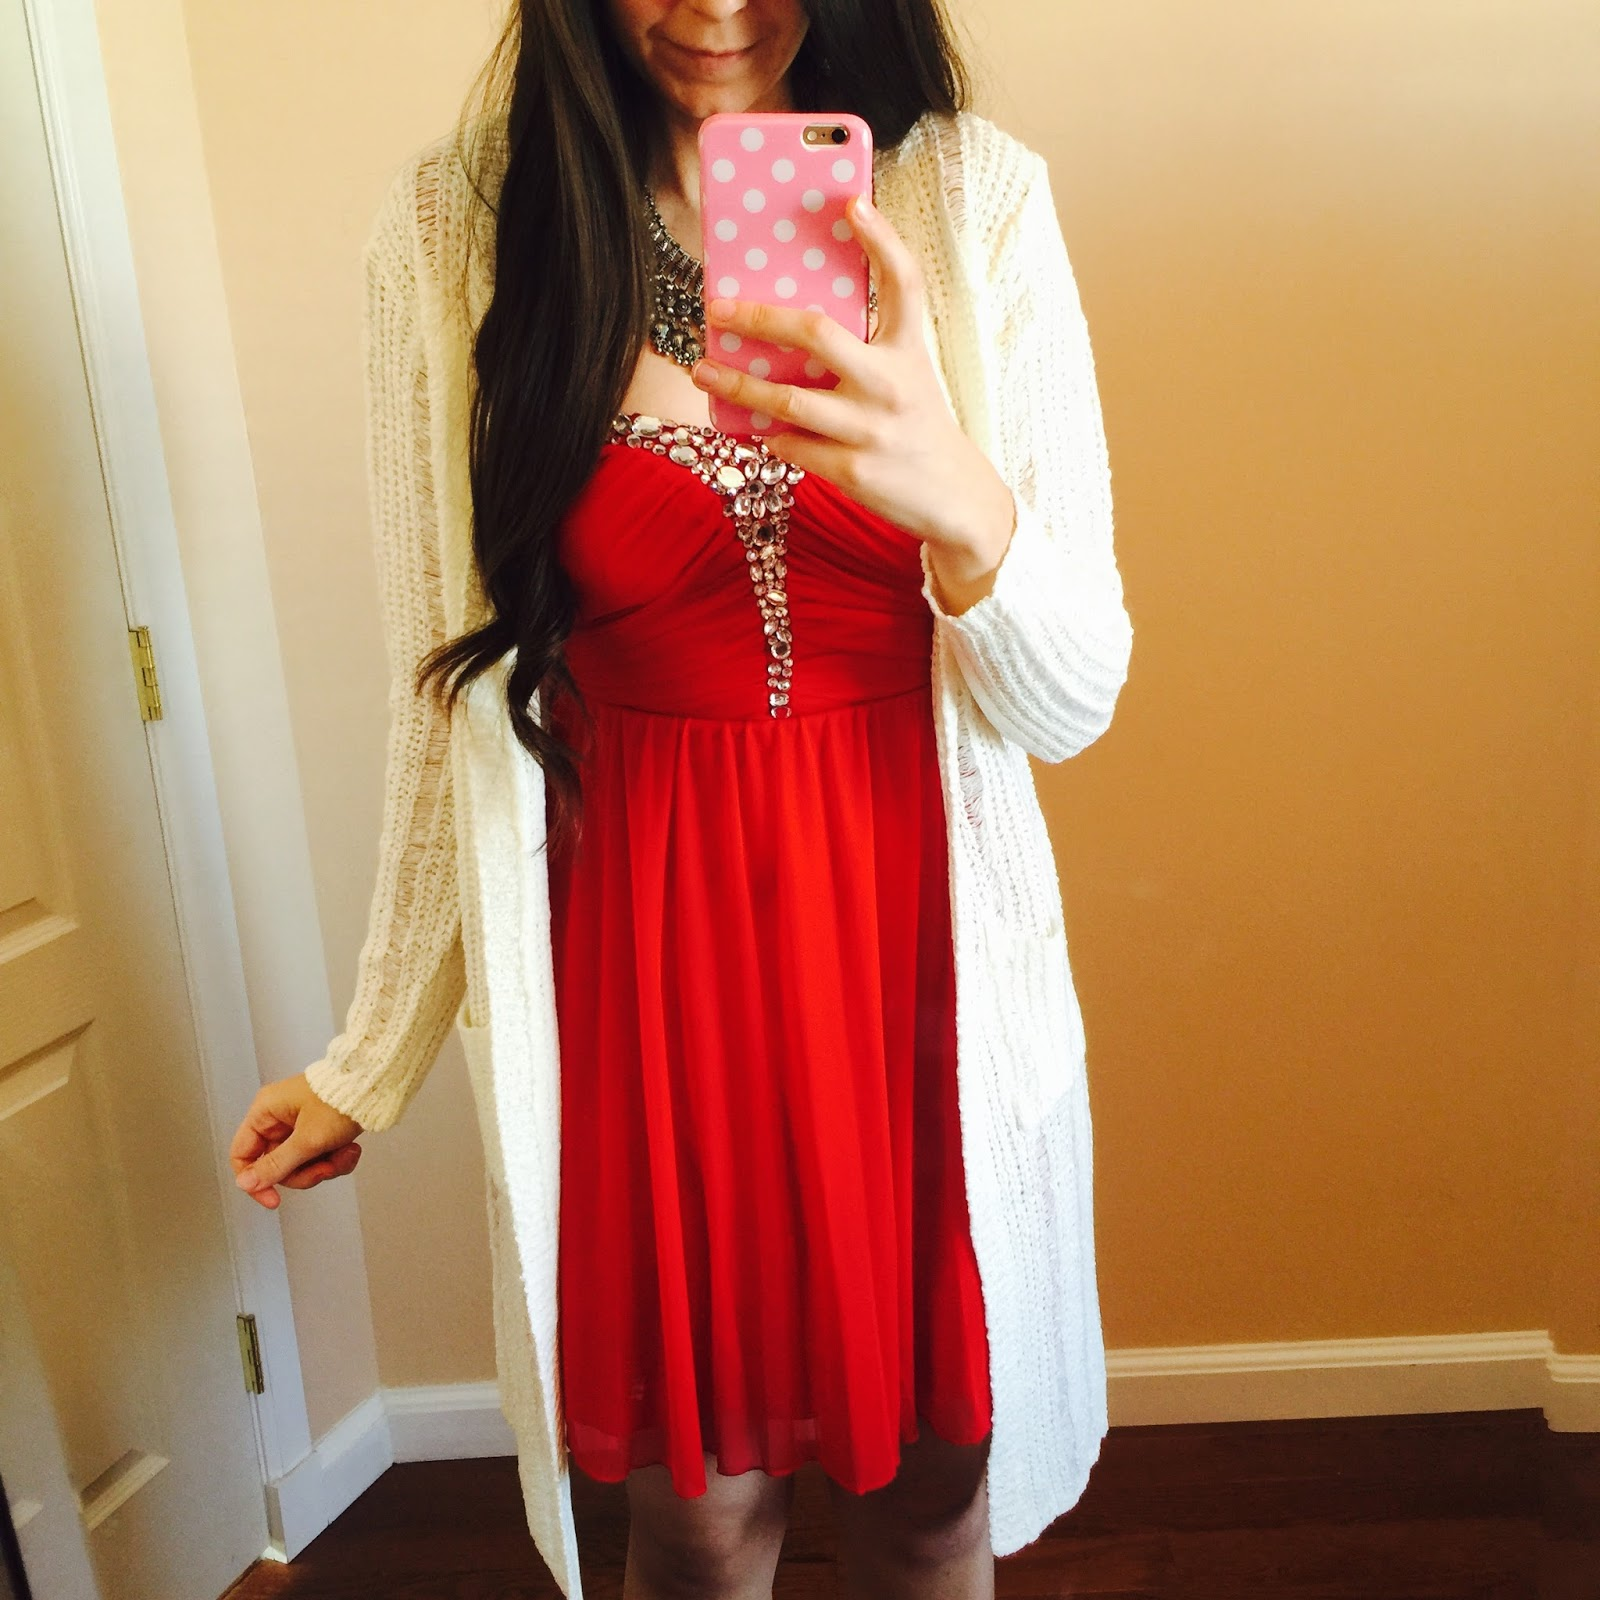 Curvy Outfit Ideas | Petite Outfit Ideas | Plus Size Fashion | Summer Fashion | OOTD | Professional Casual Chic Fashion and Style Inspiration | How To Style a Red Sequined Dress with a white cardigan